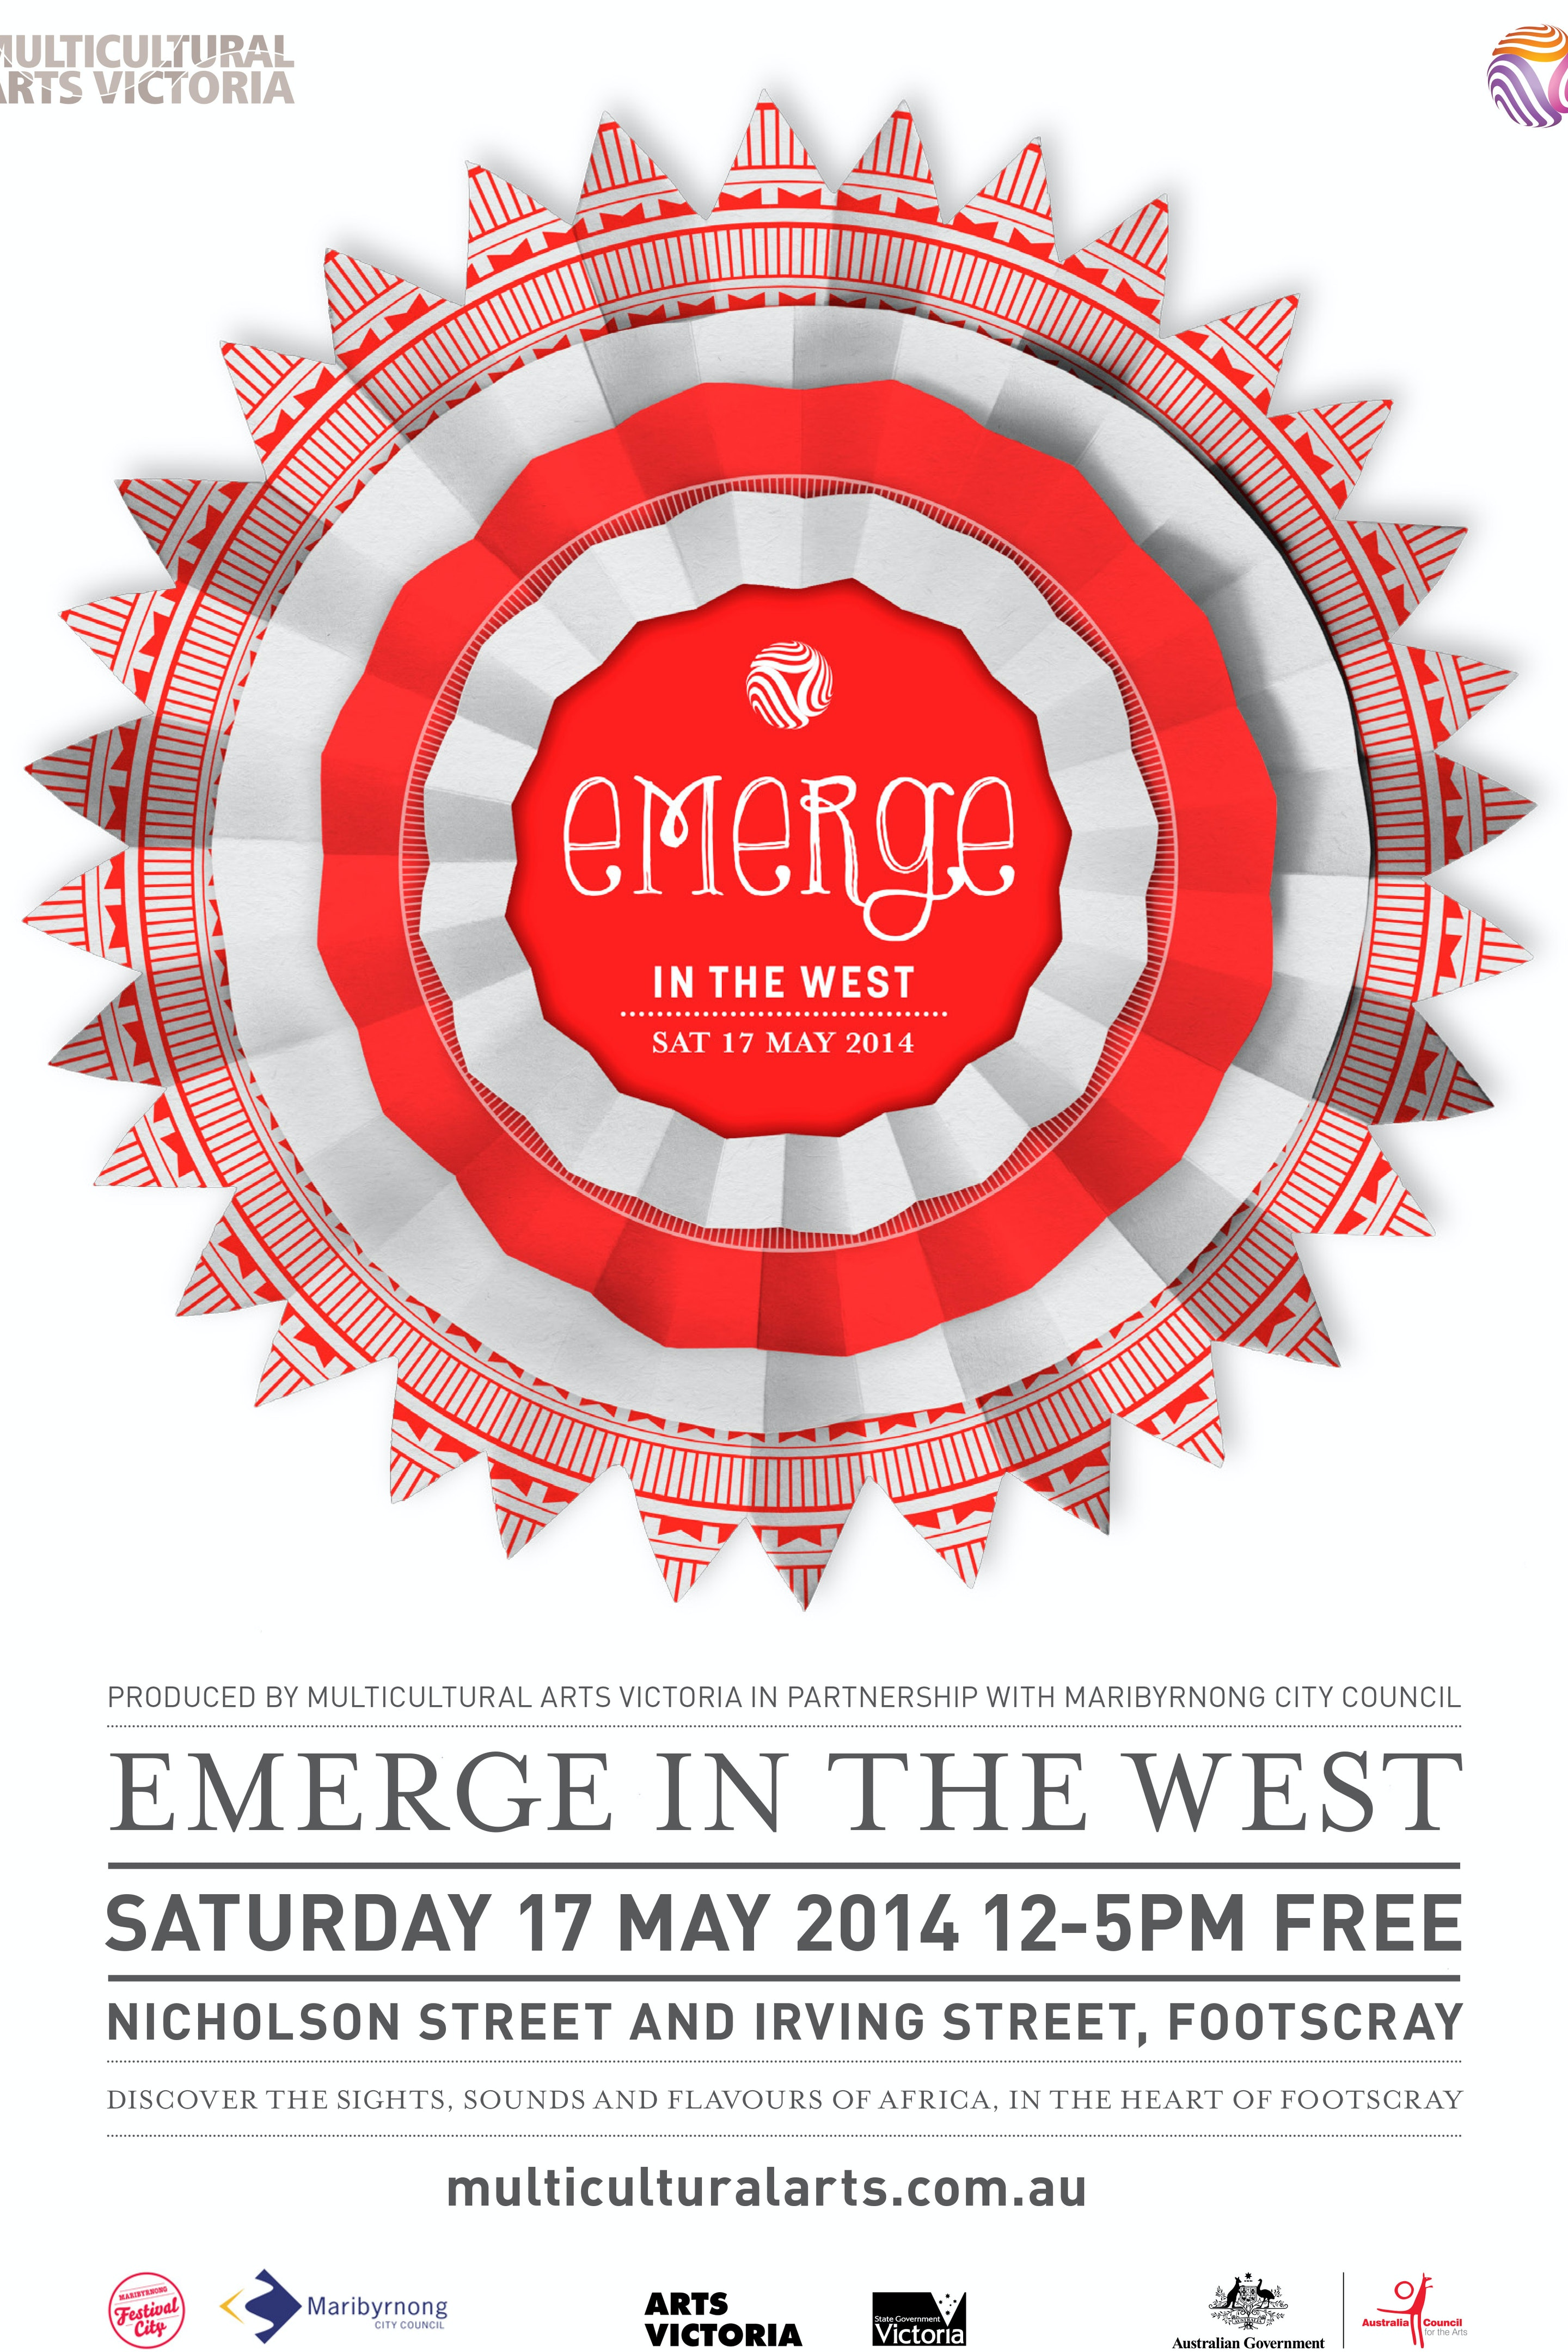 MULTICULTURAL ARTS VICTORIA: Emerge in the west Exhibition